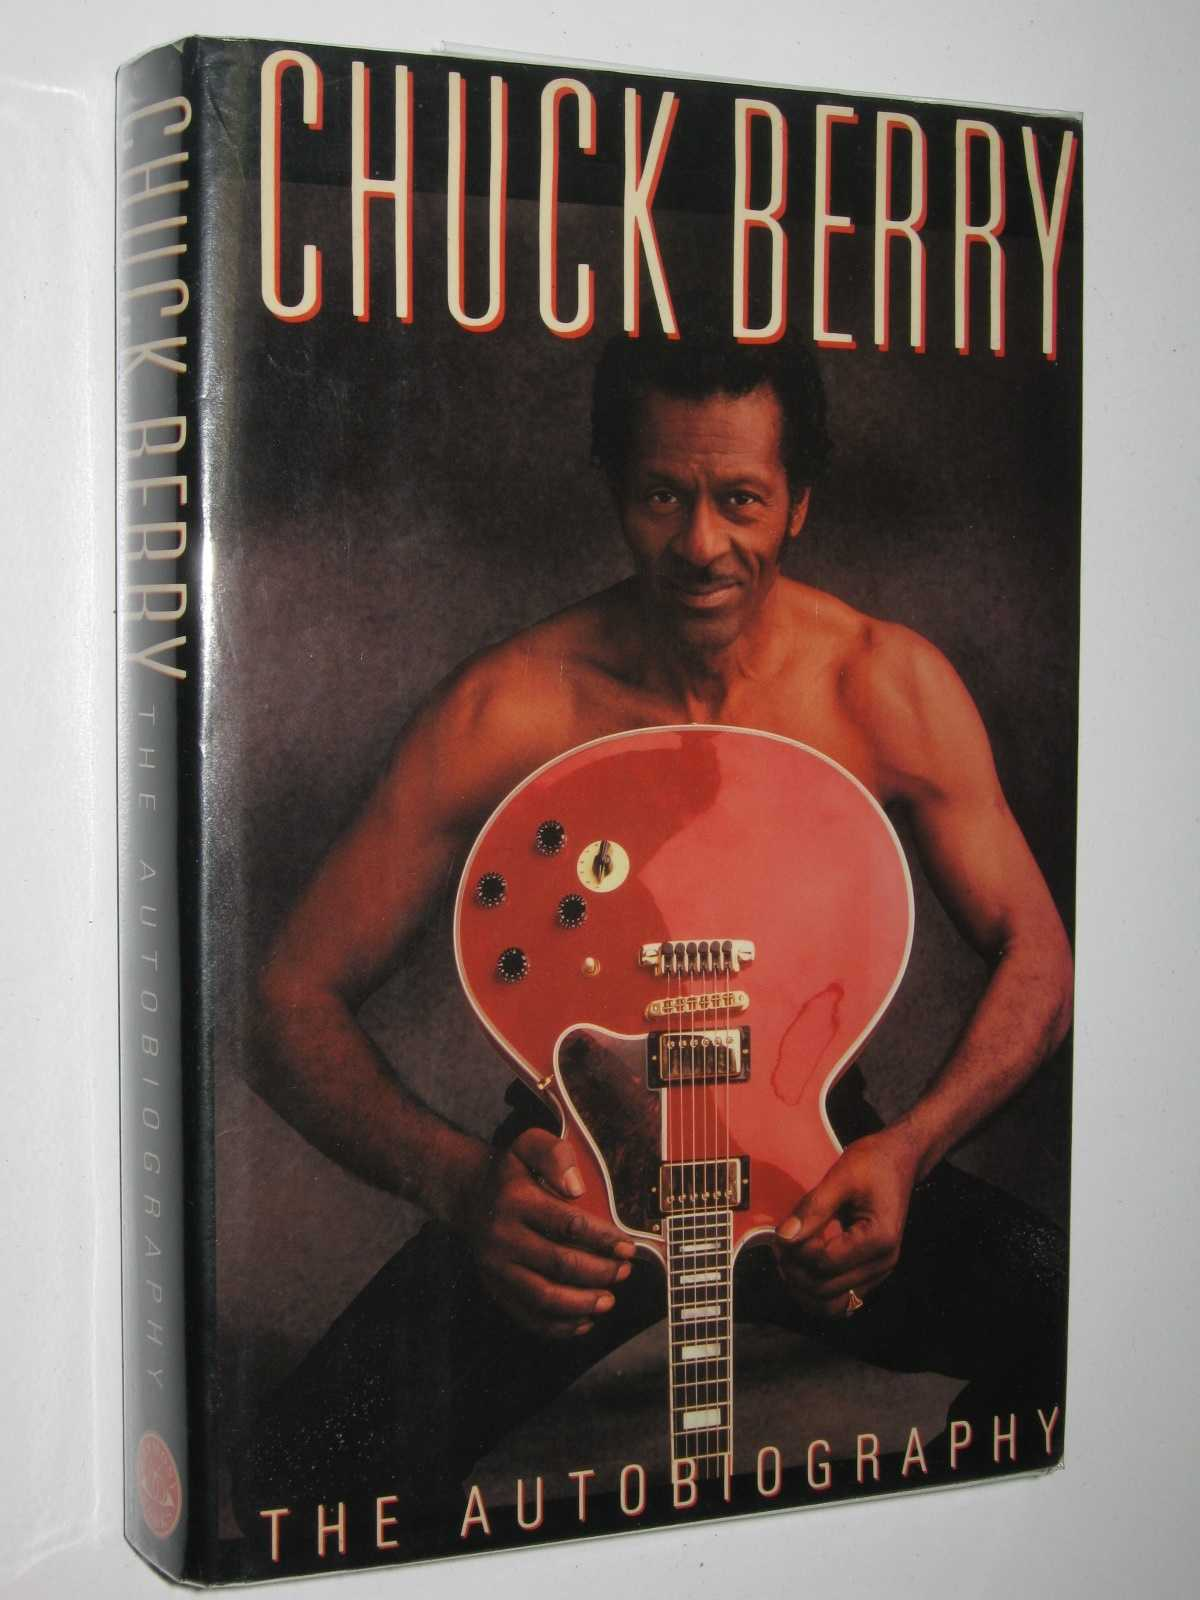 Image for Chuck Berry: The Autobiography